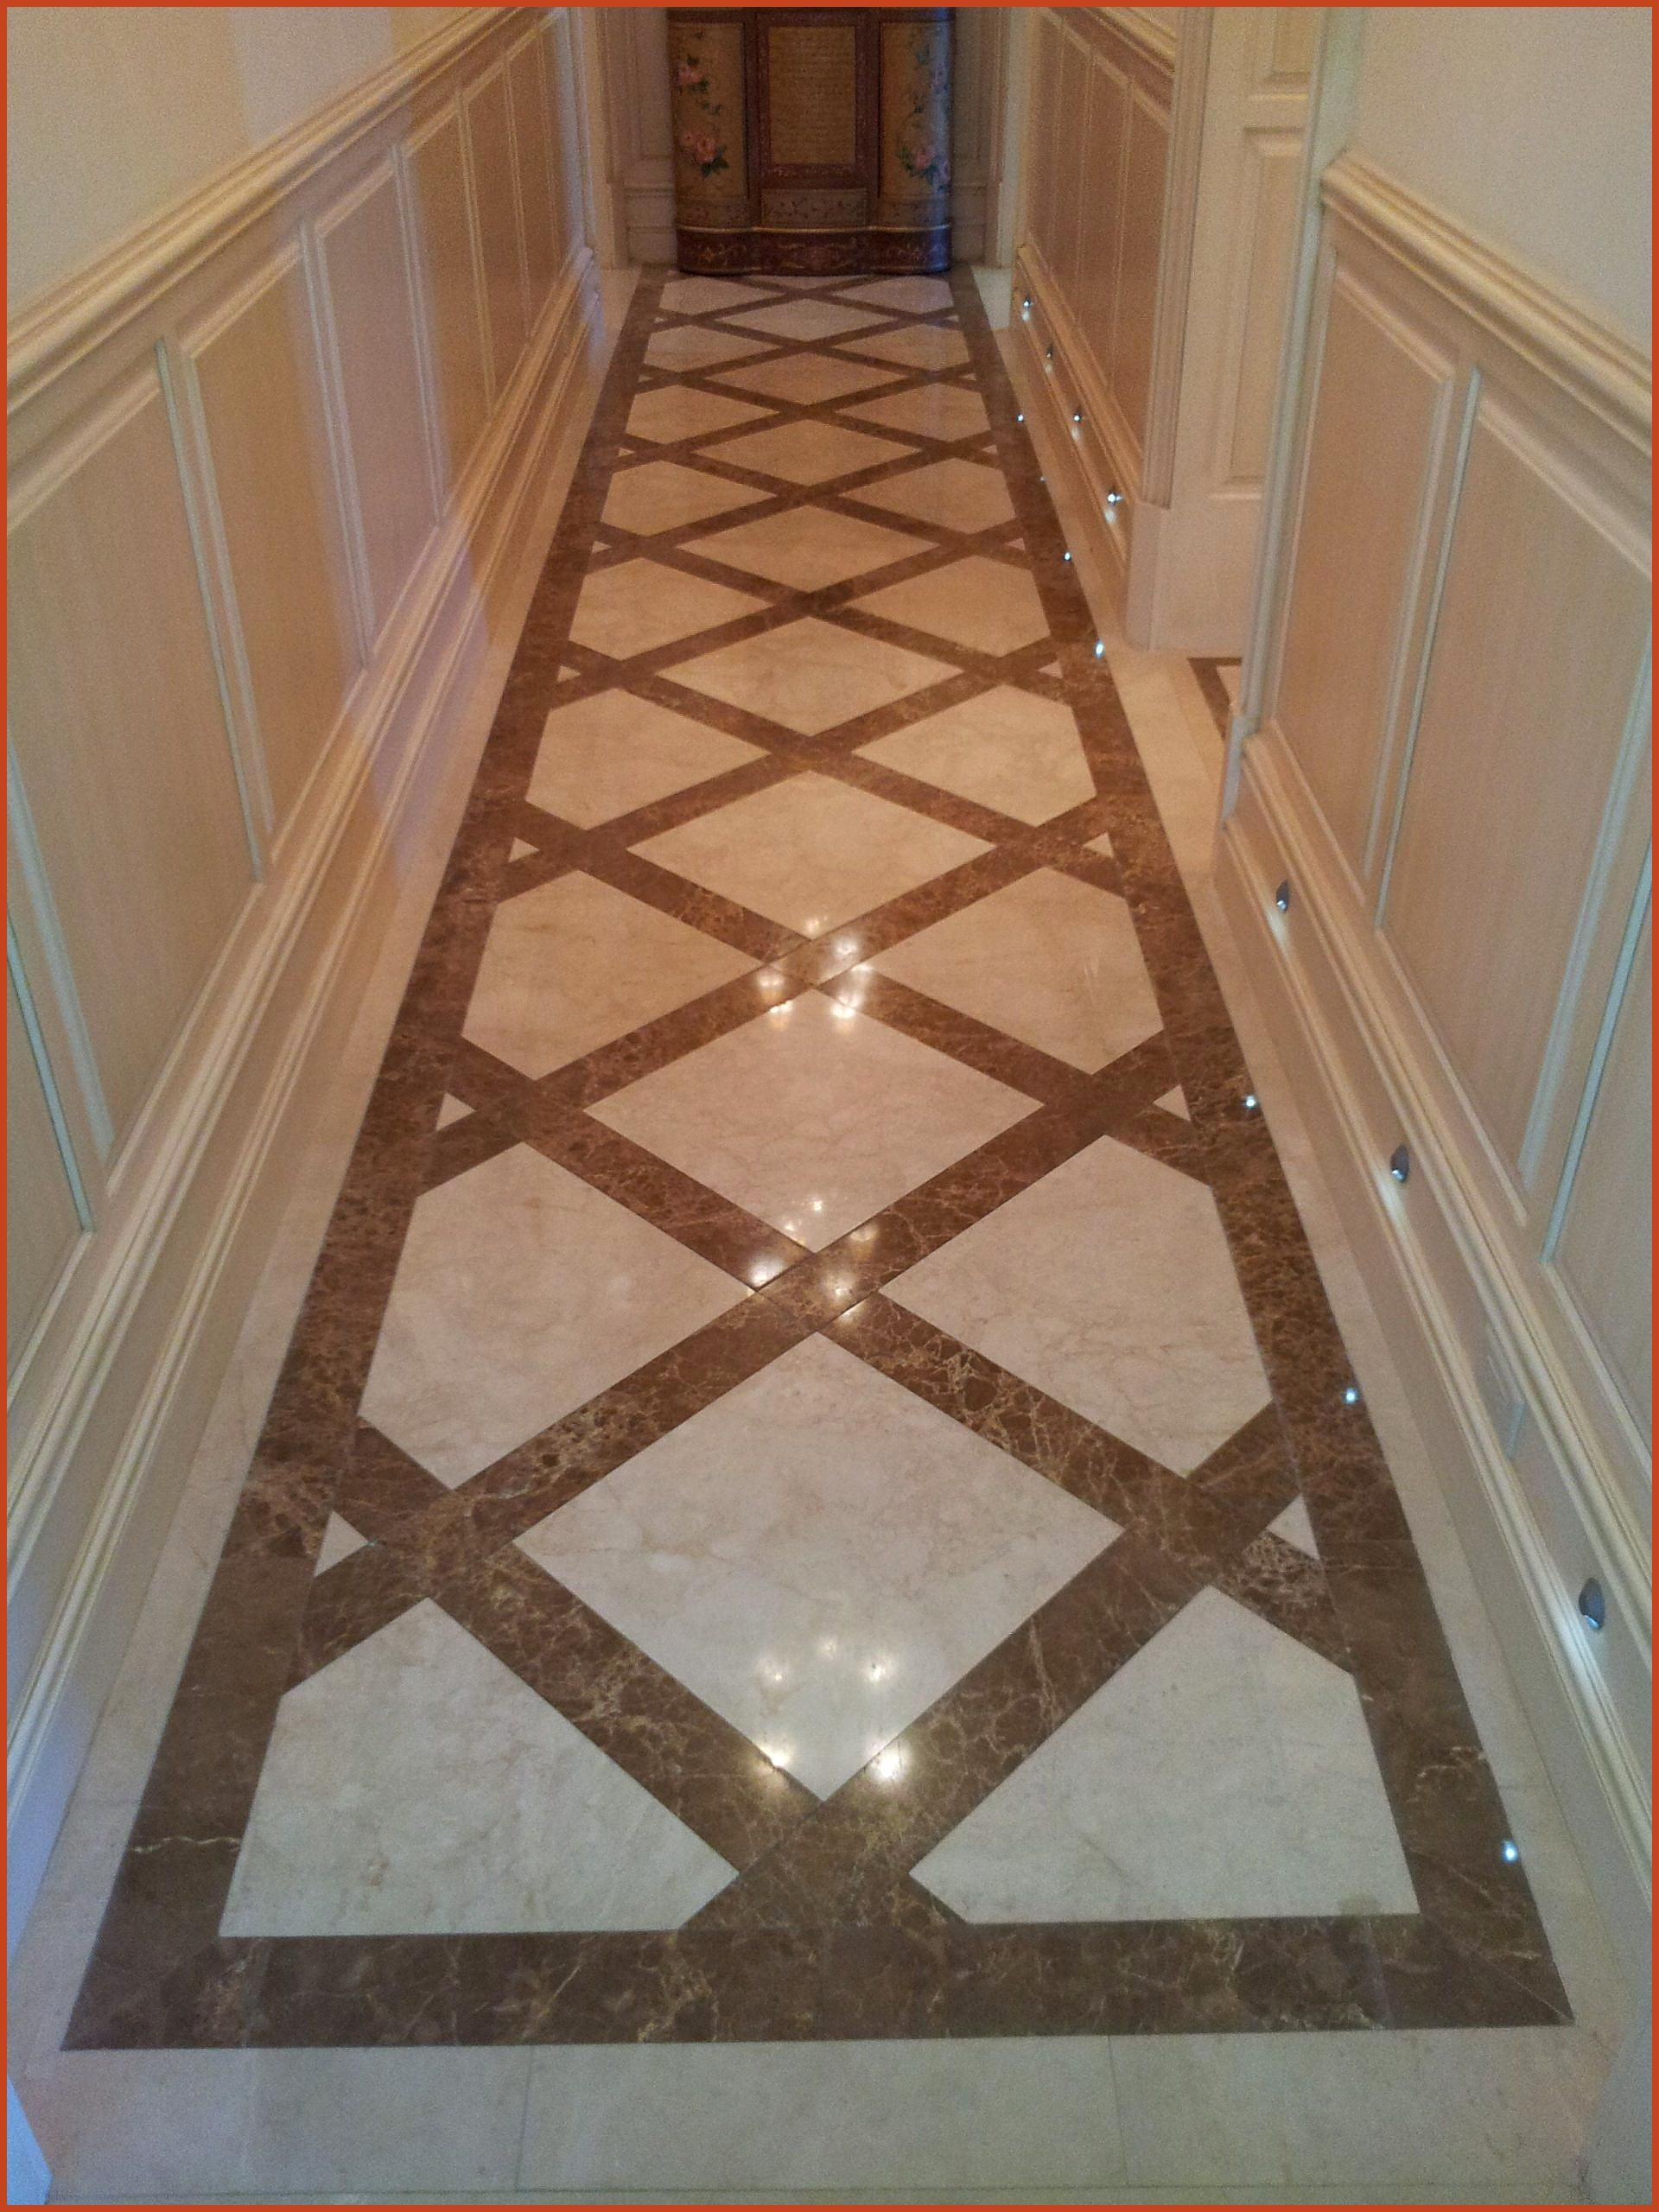 Crema Marfil And Emperador Light Marble Floors Design By Blair